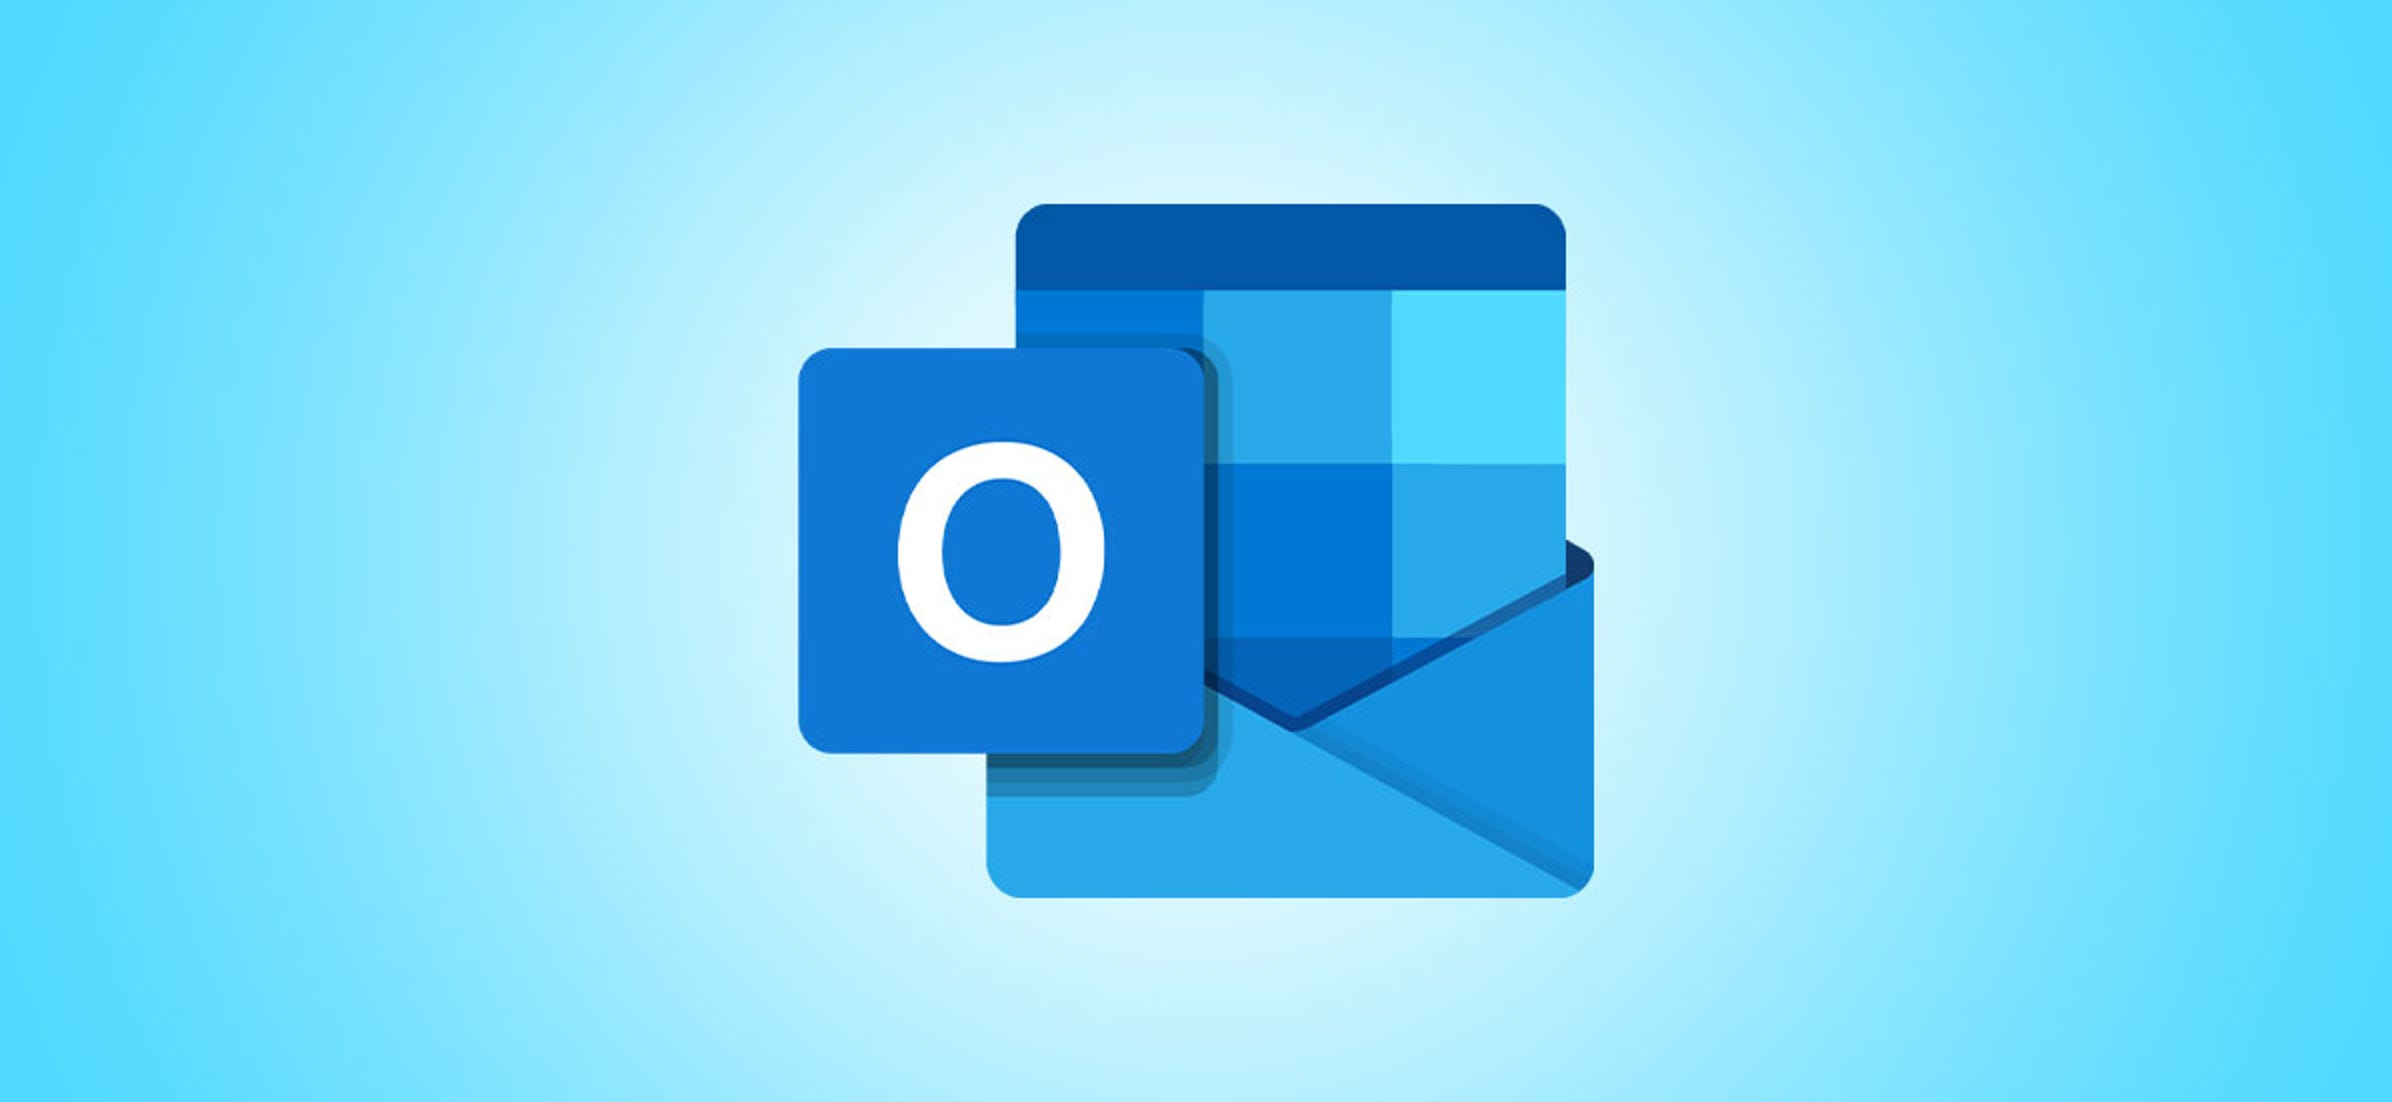 How to Have Your Emails Read Aloud in Outlook on iPhone, iPad, and Android